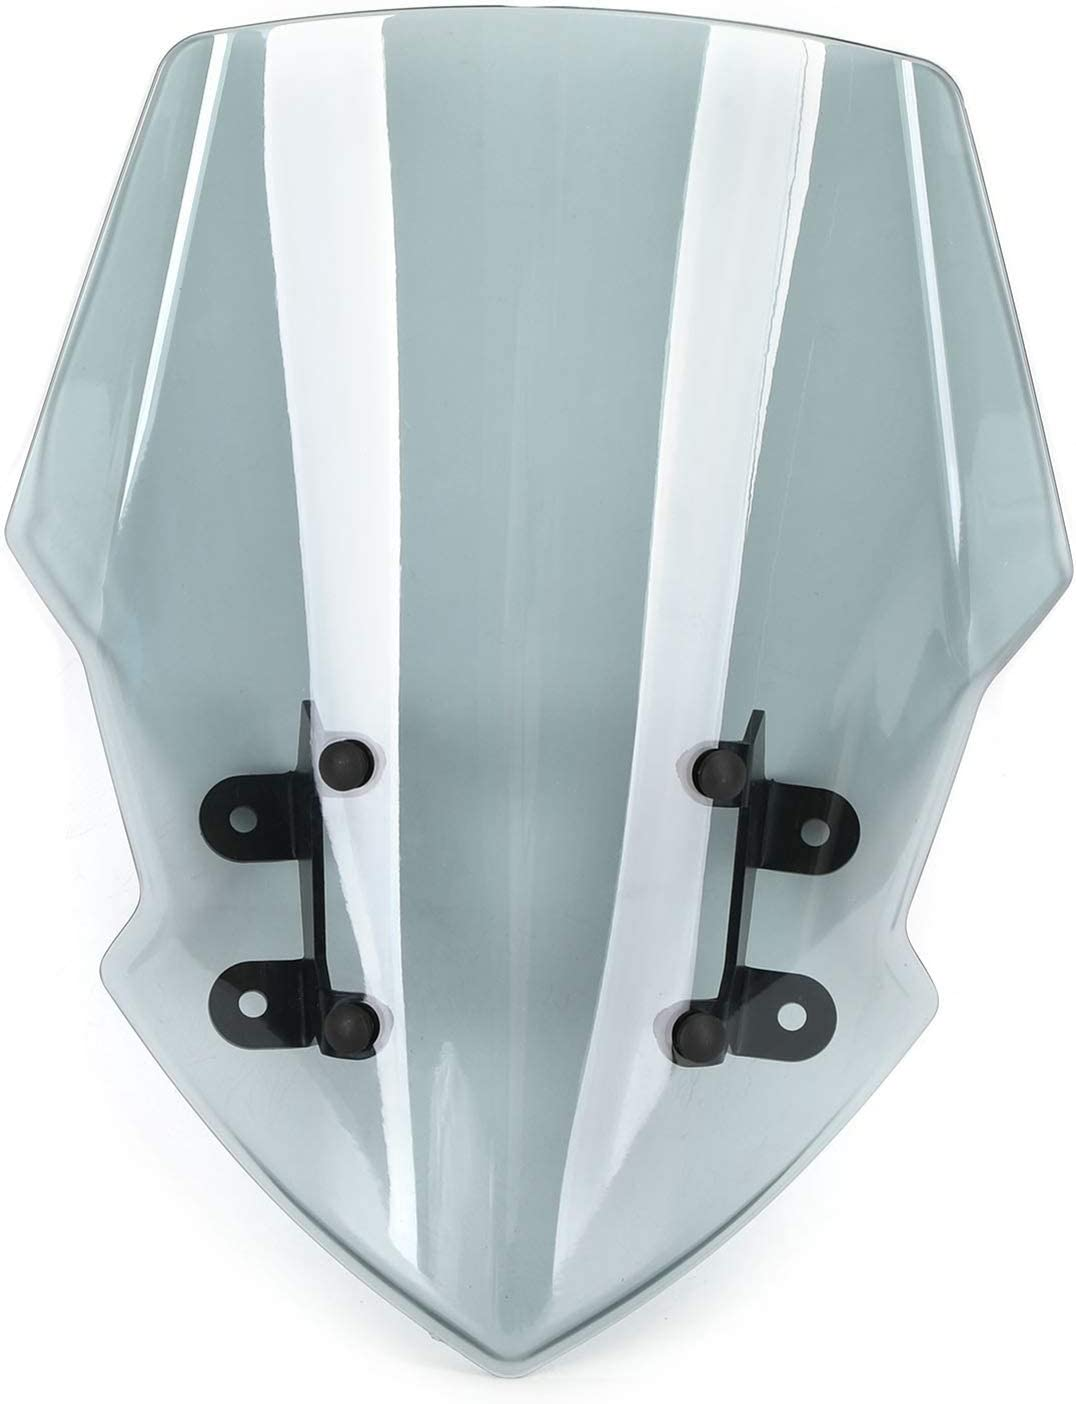 Motorcycle Wind Deflector Plastic Fort Worth Mall price Windshield ABS